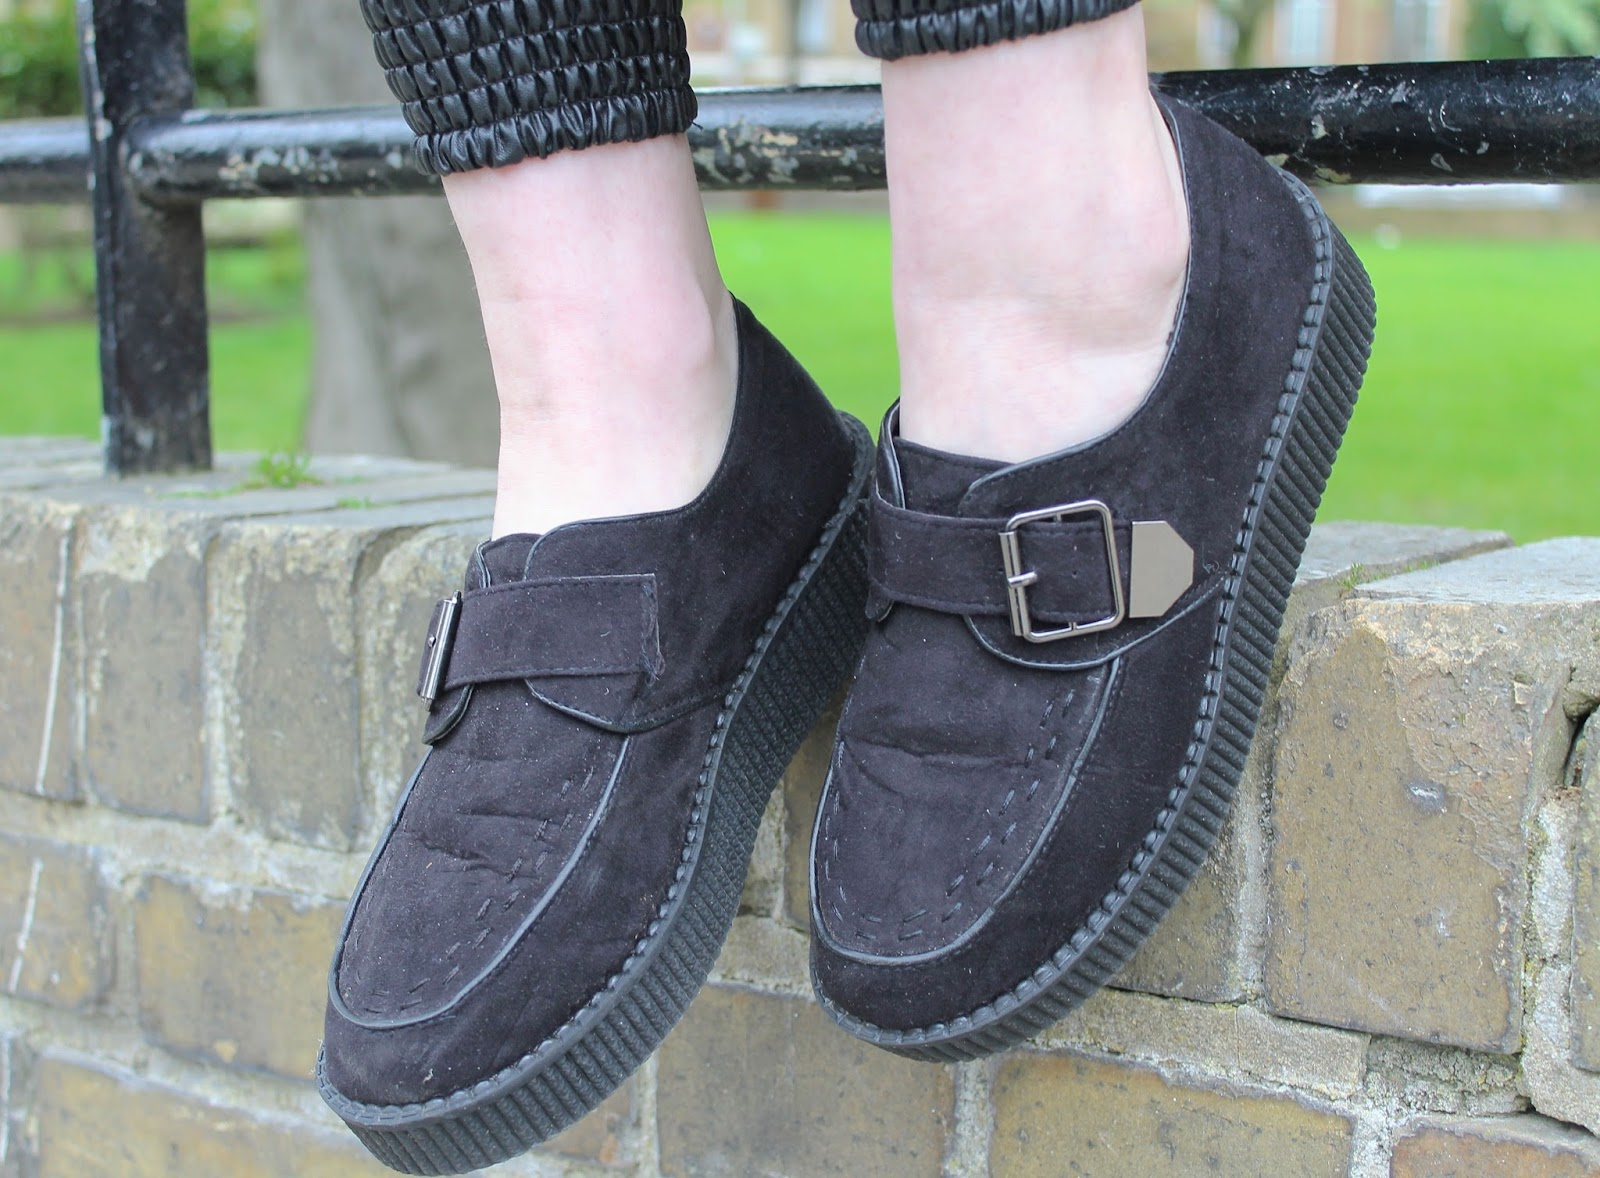 Bec Boop creepers style